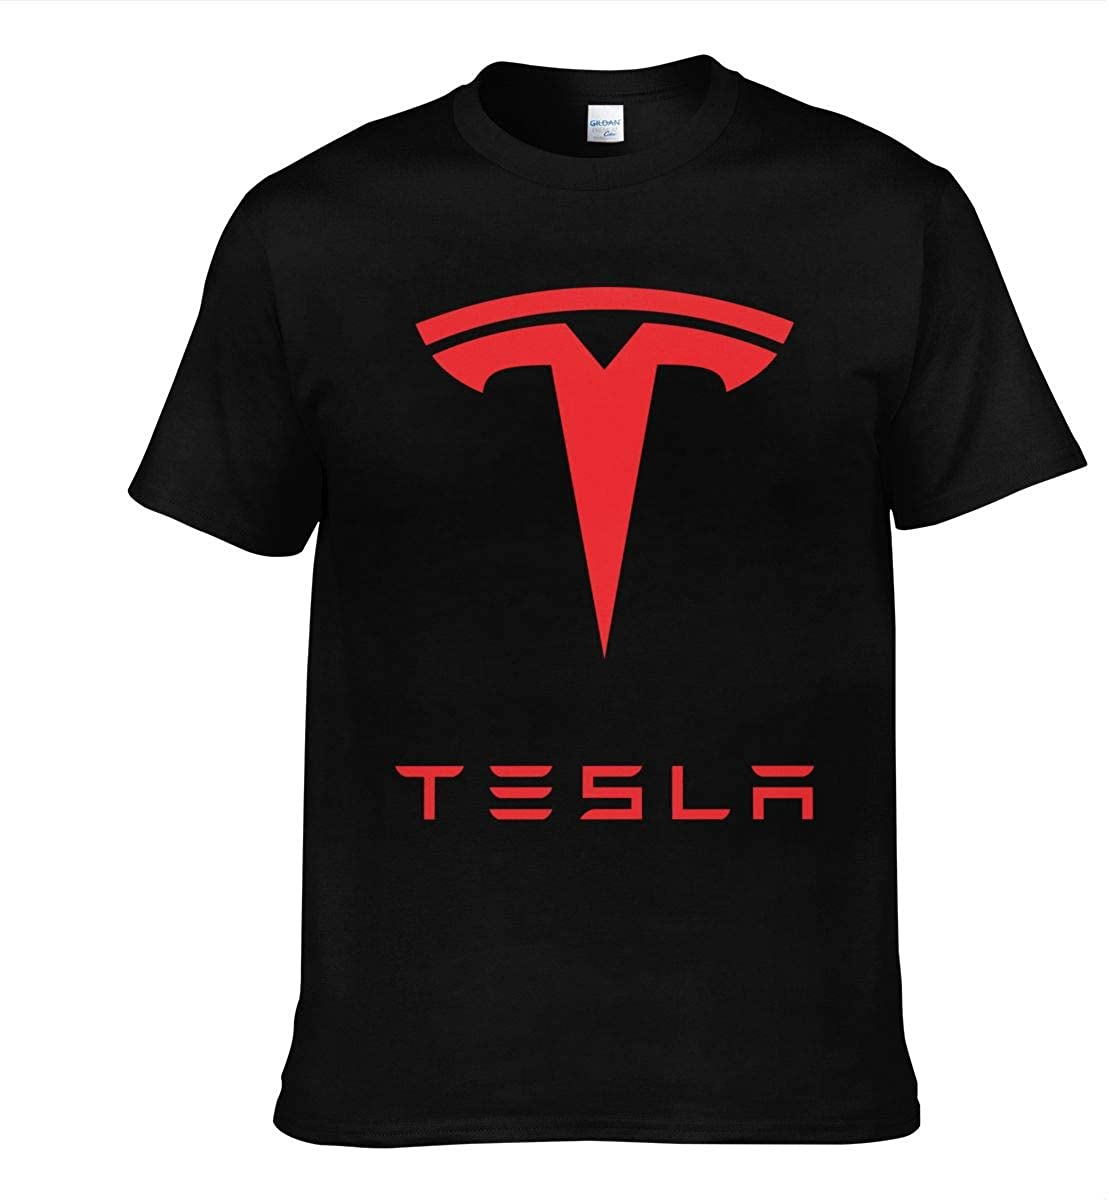 Youth Mens New Tesla Auto Logo T-Shirt Fashion Short Sleeve T-Shirts Tee Black